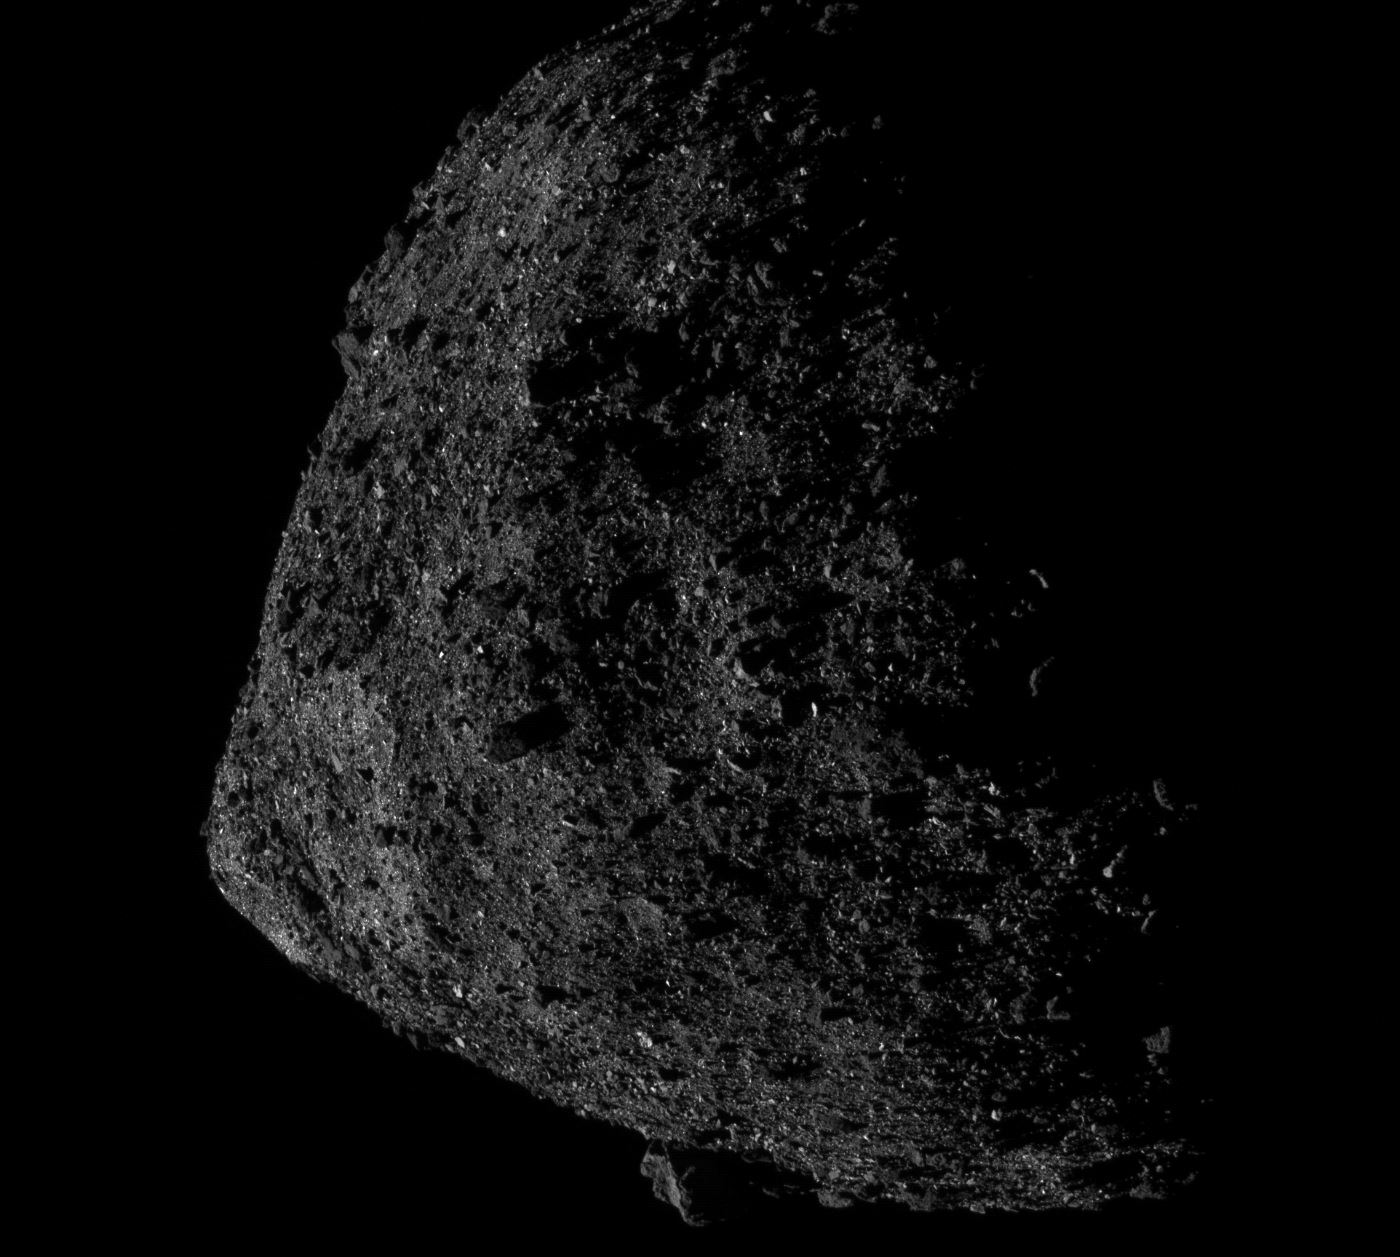 This is the Closest OSIRIS-REx has Gotten to Bennu. A mere 680 Meters Above the Asteroid!